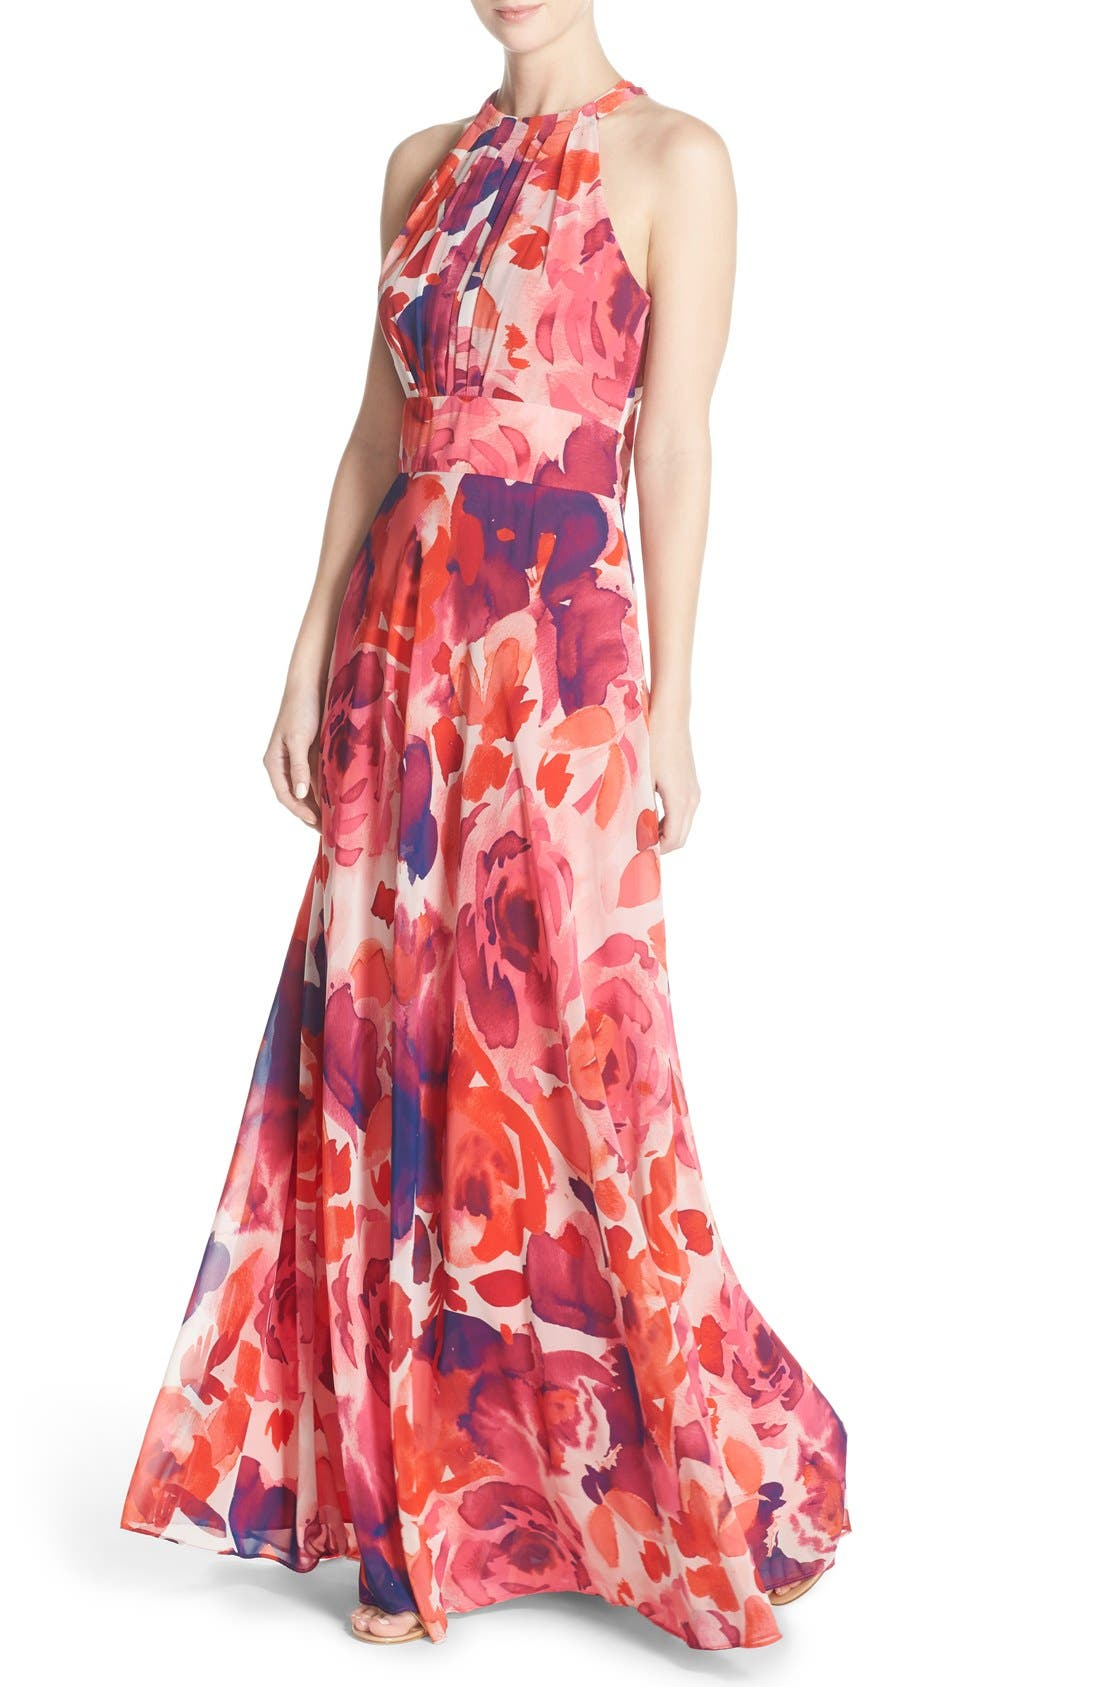 ELIZA J, Floral Print Halter Maxi Dress, Alternate thumbnail 6, color, PINK/ CORAL/ PURPLE